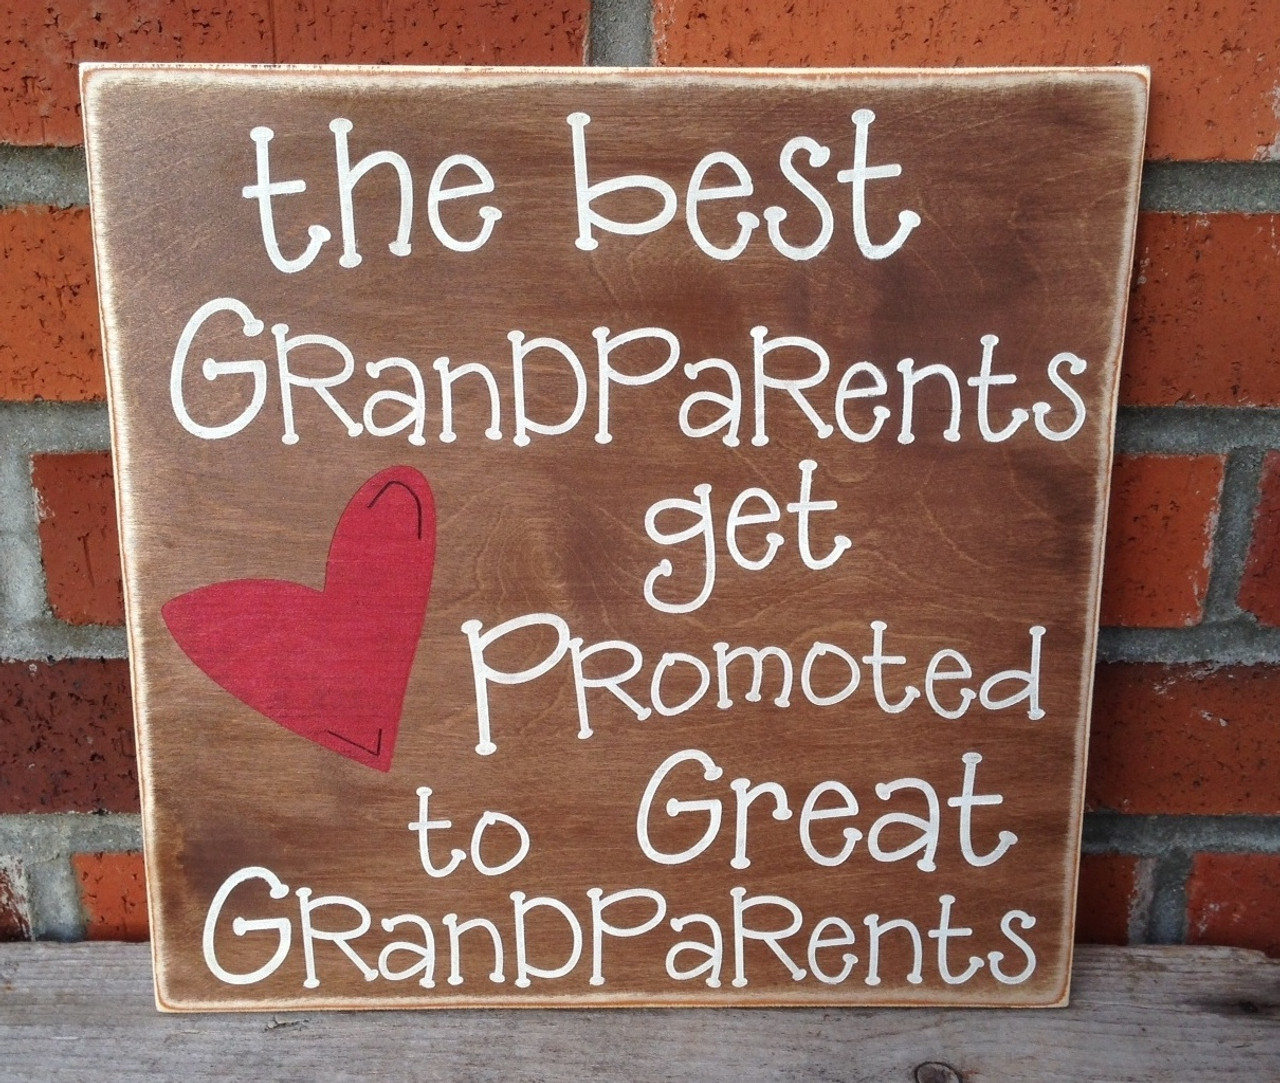 The best grandparents get promoted to great grandparents